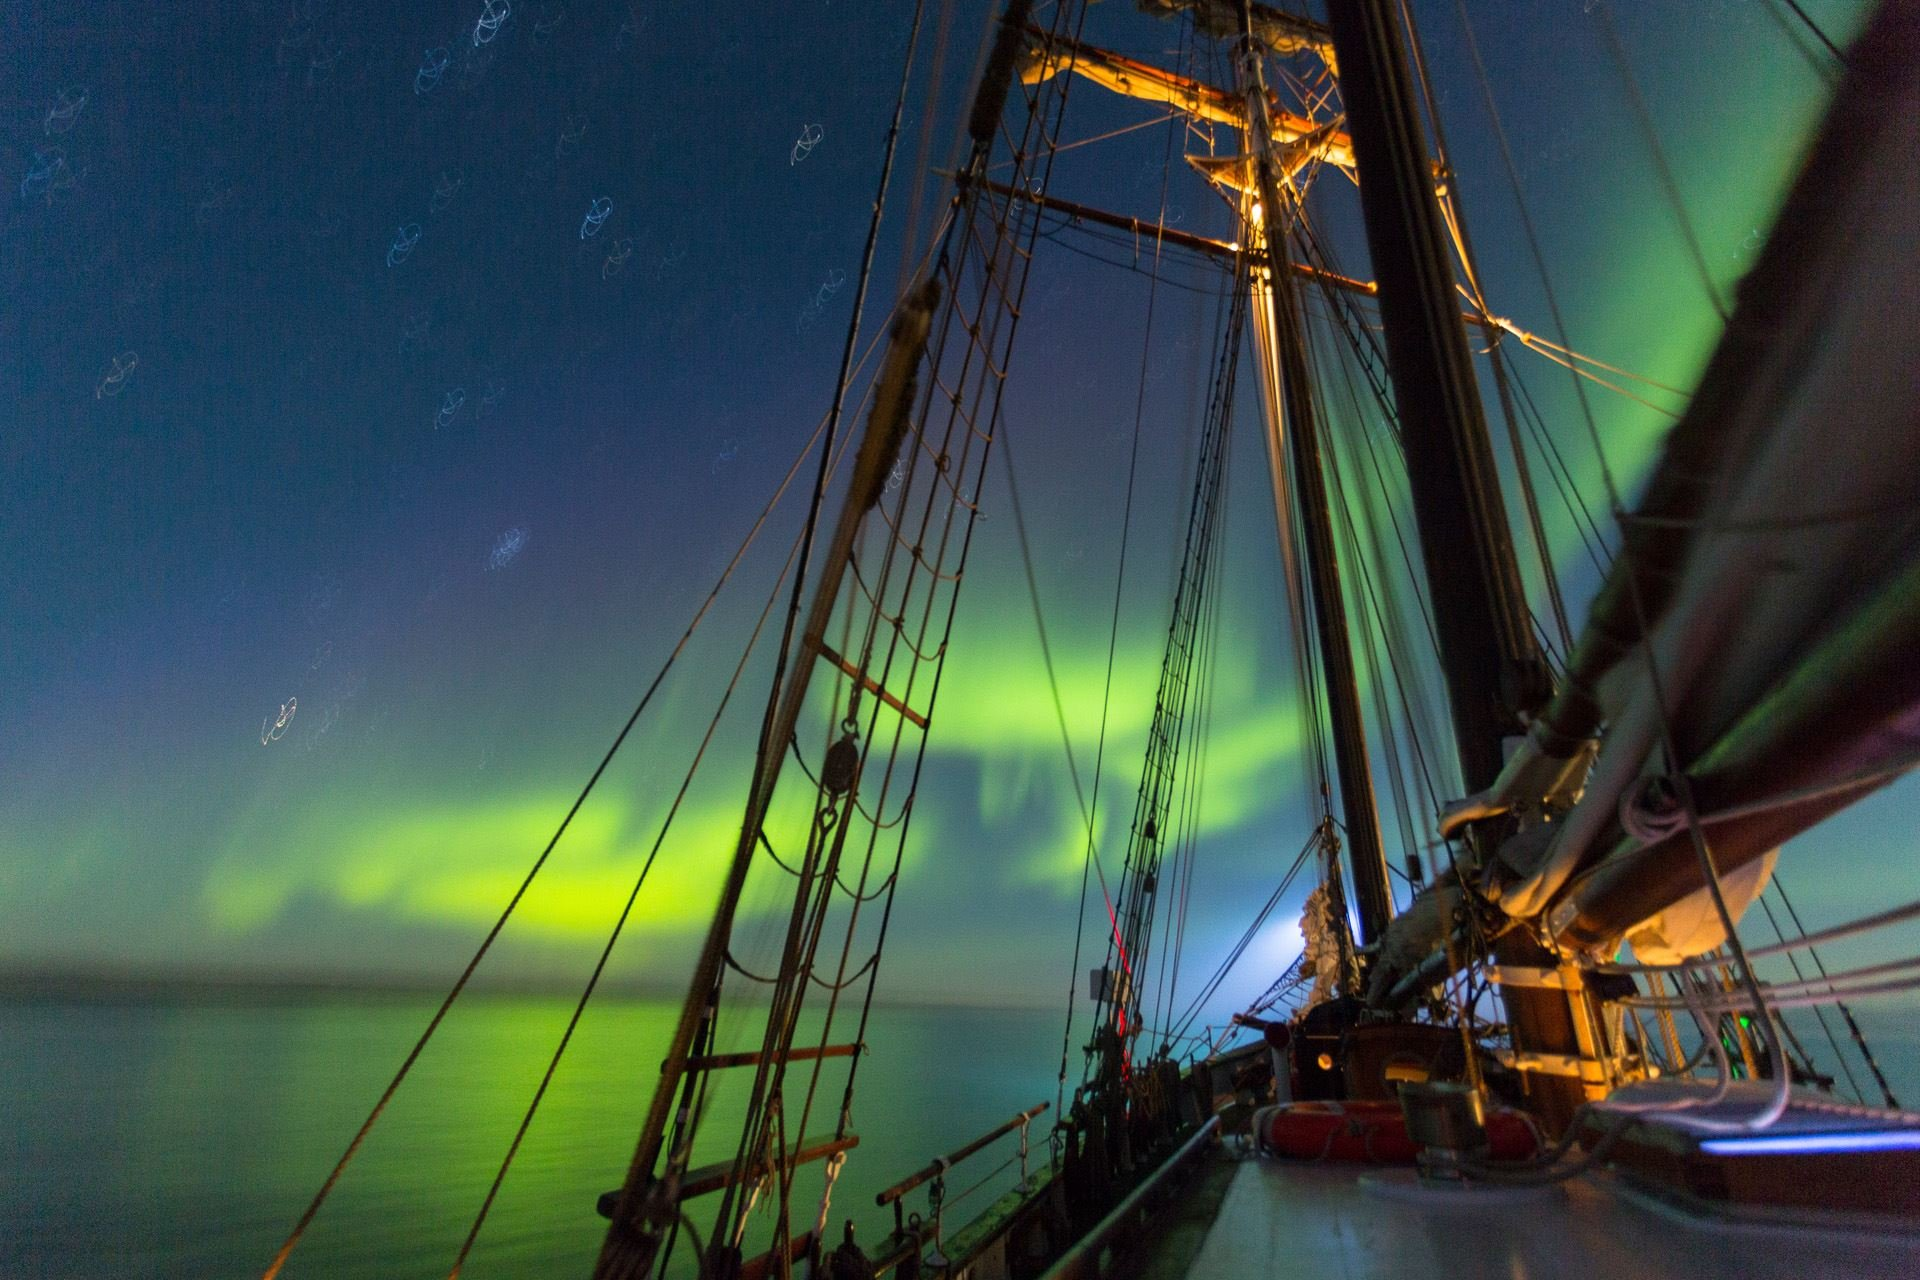 Silent whale exploring and Northern Lights - North Sailing Norway